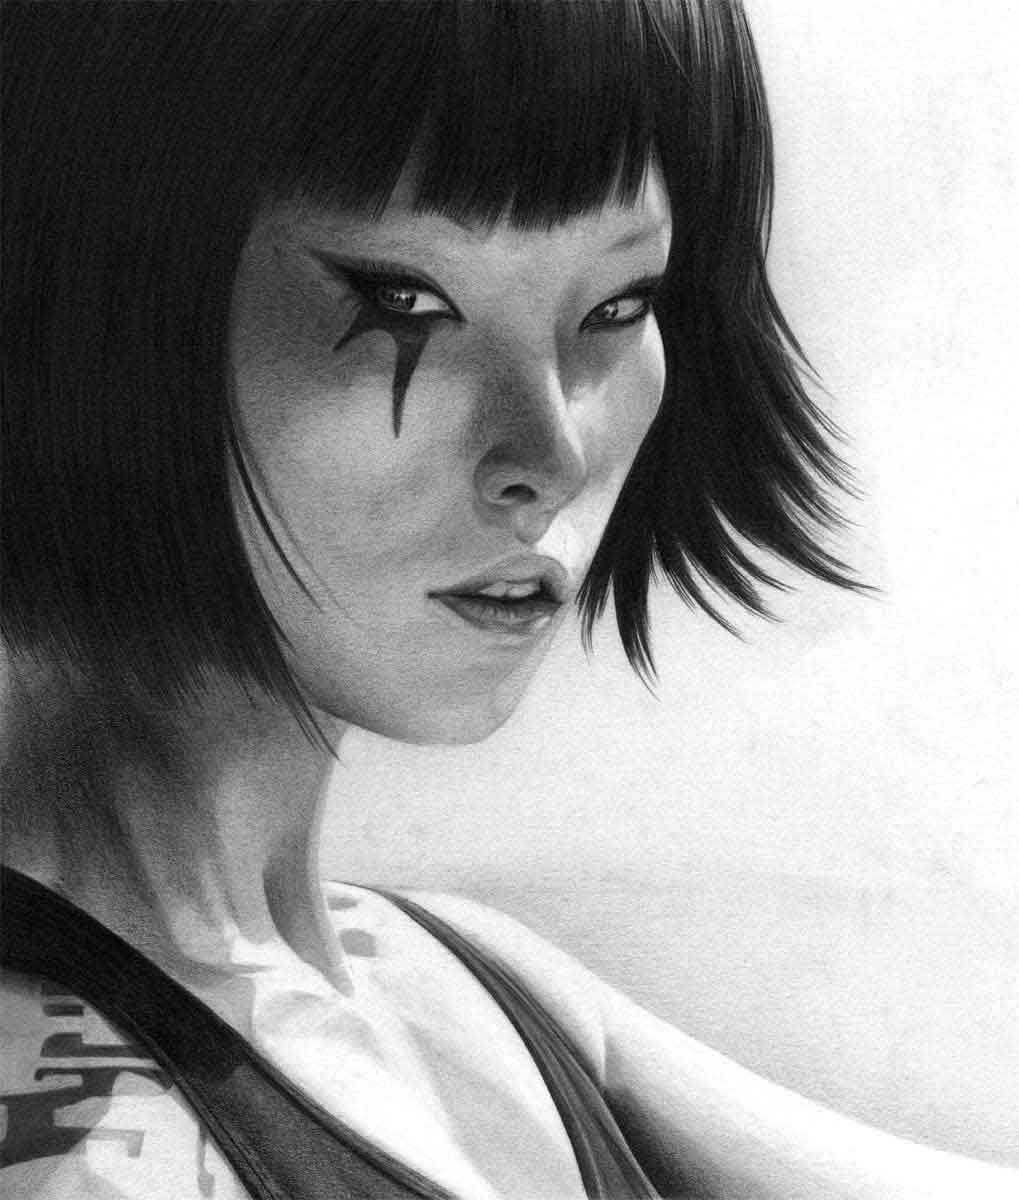 FAITH FROM THE VIDEO GAME MIRRORS EDGE REALISTIC PENCIL DRAWING